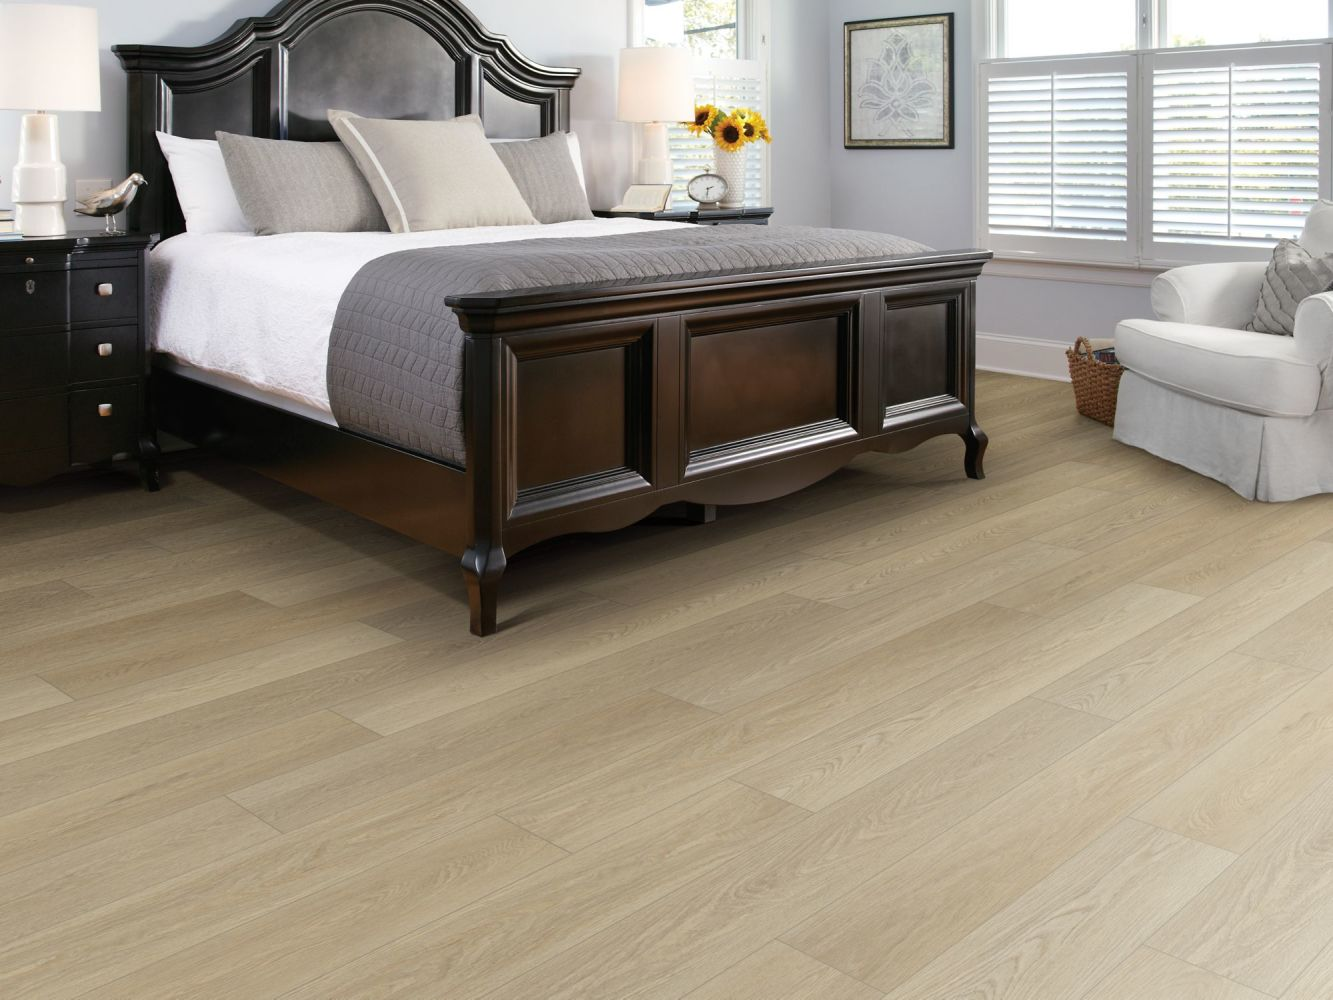 Shaw Floors Resilient Property Solutions Prominence Plus Timeless Oak 00693_VE381